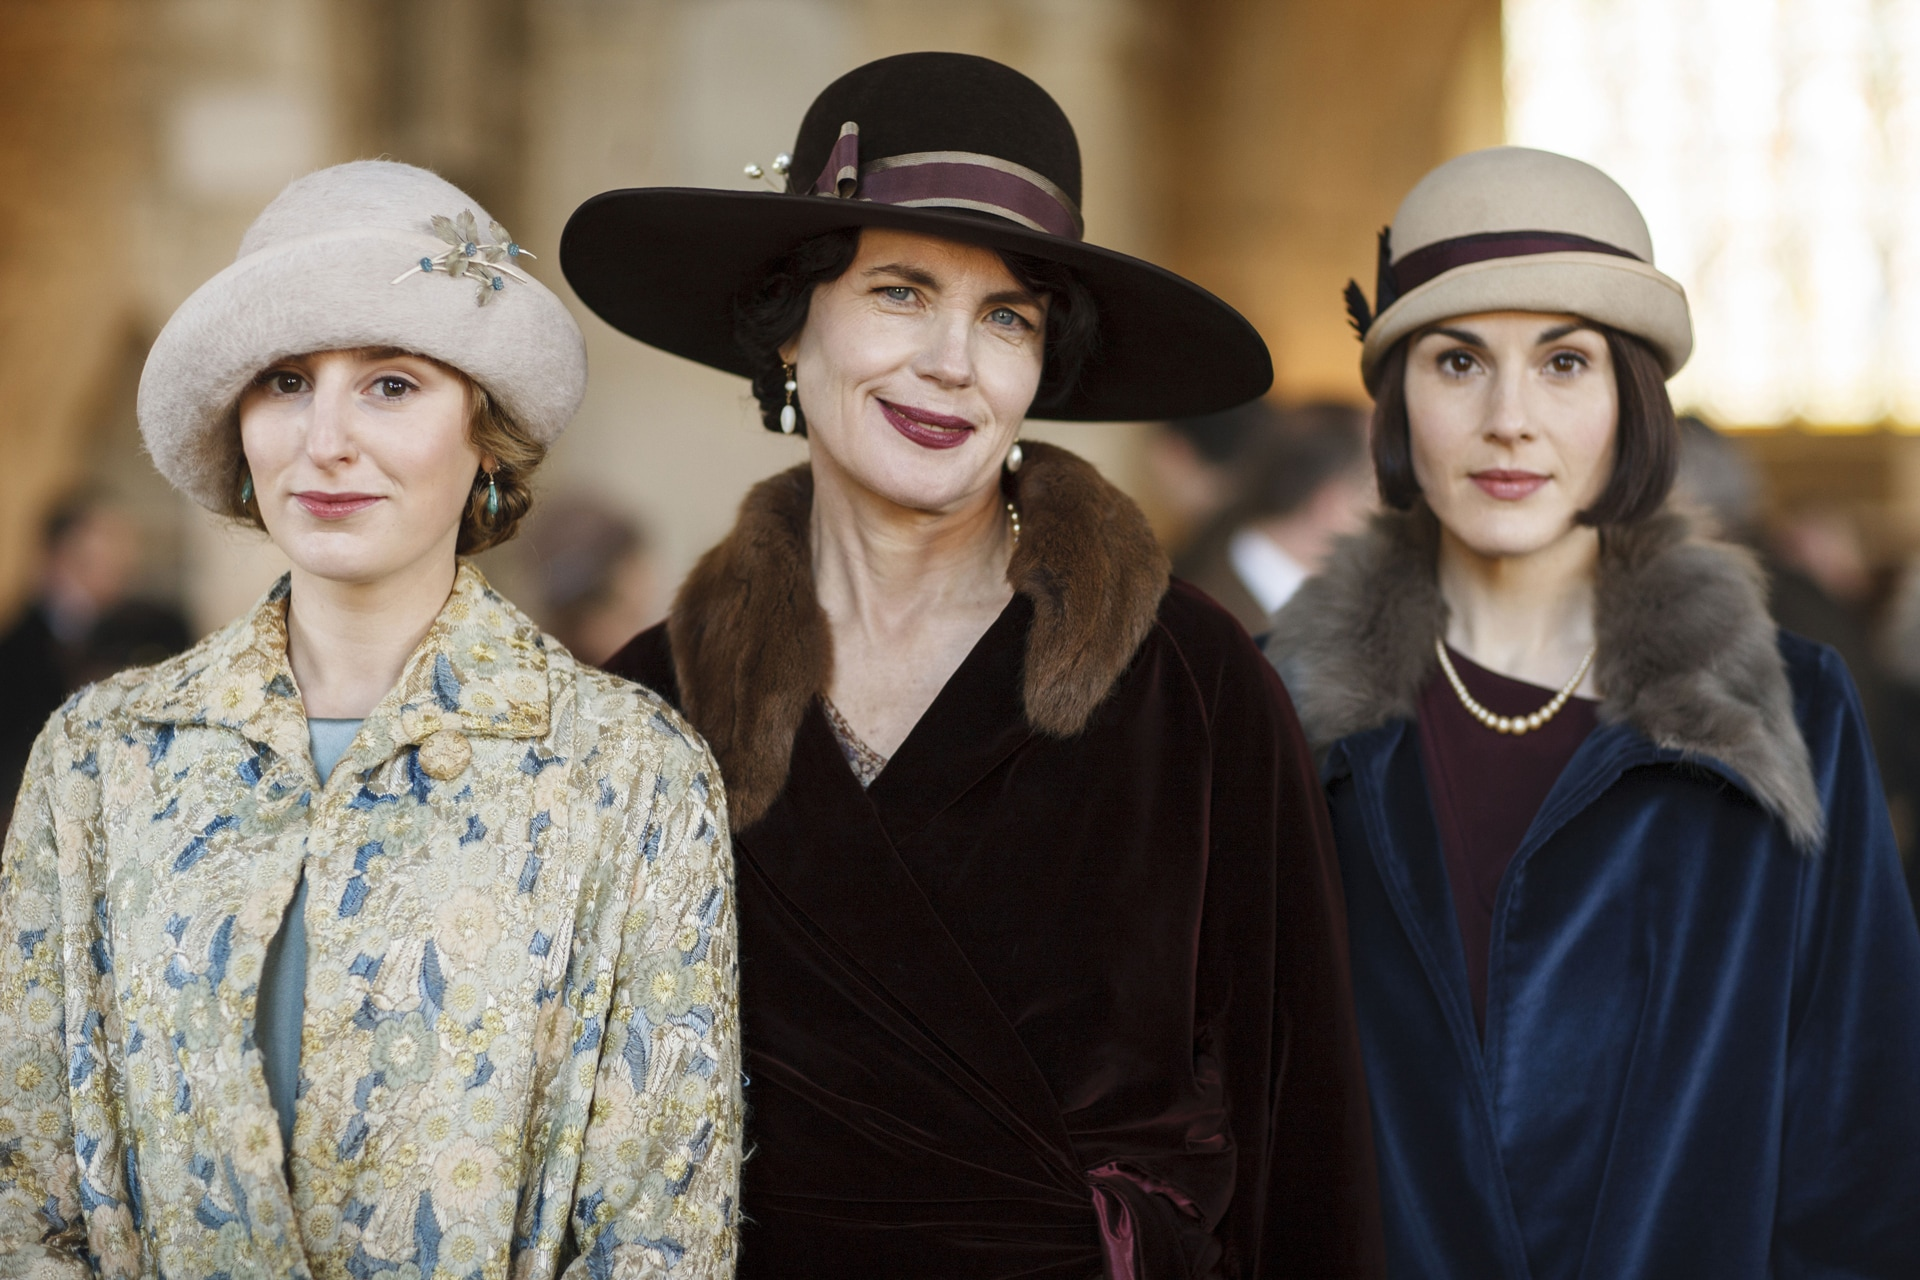 Downton Abbey's original cast is reuniting for a movie